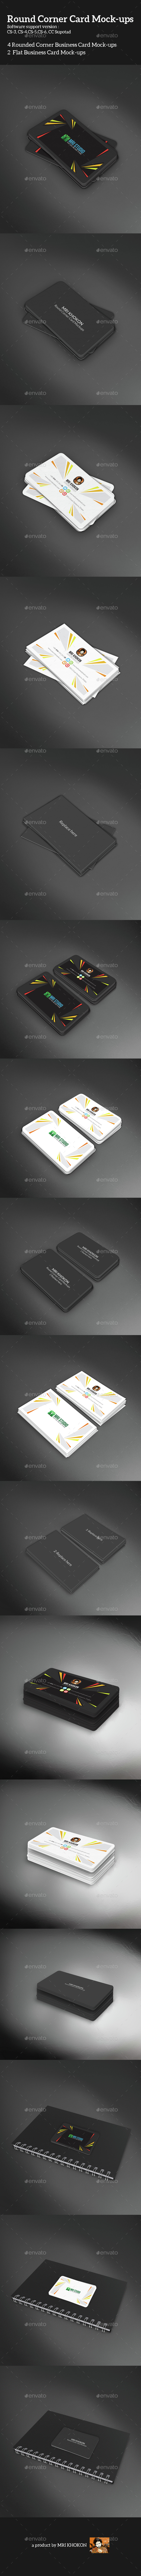 Round Corner Business Card Mock-ups - Business Cards Print